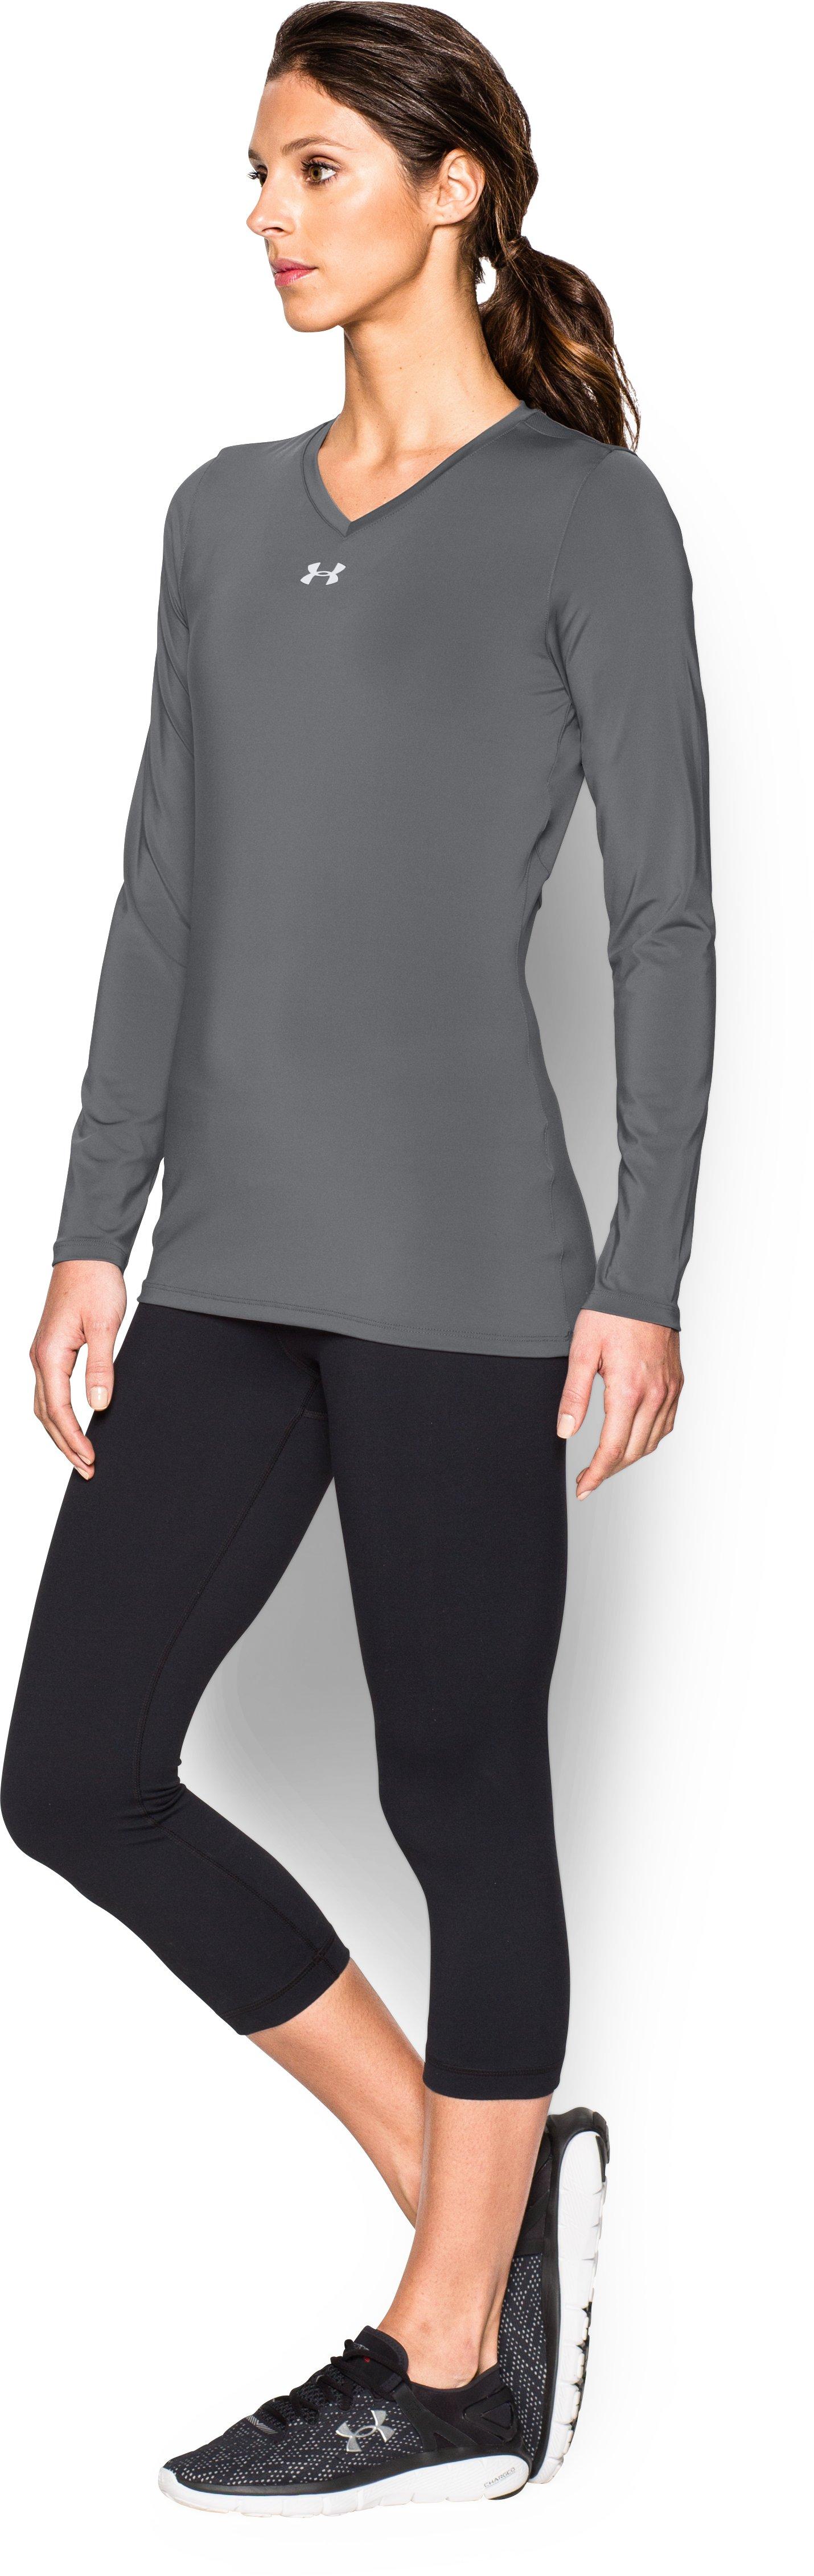 Women's UA Power Alley Long Sleeve Jersey, Graphite